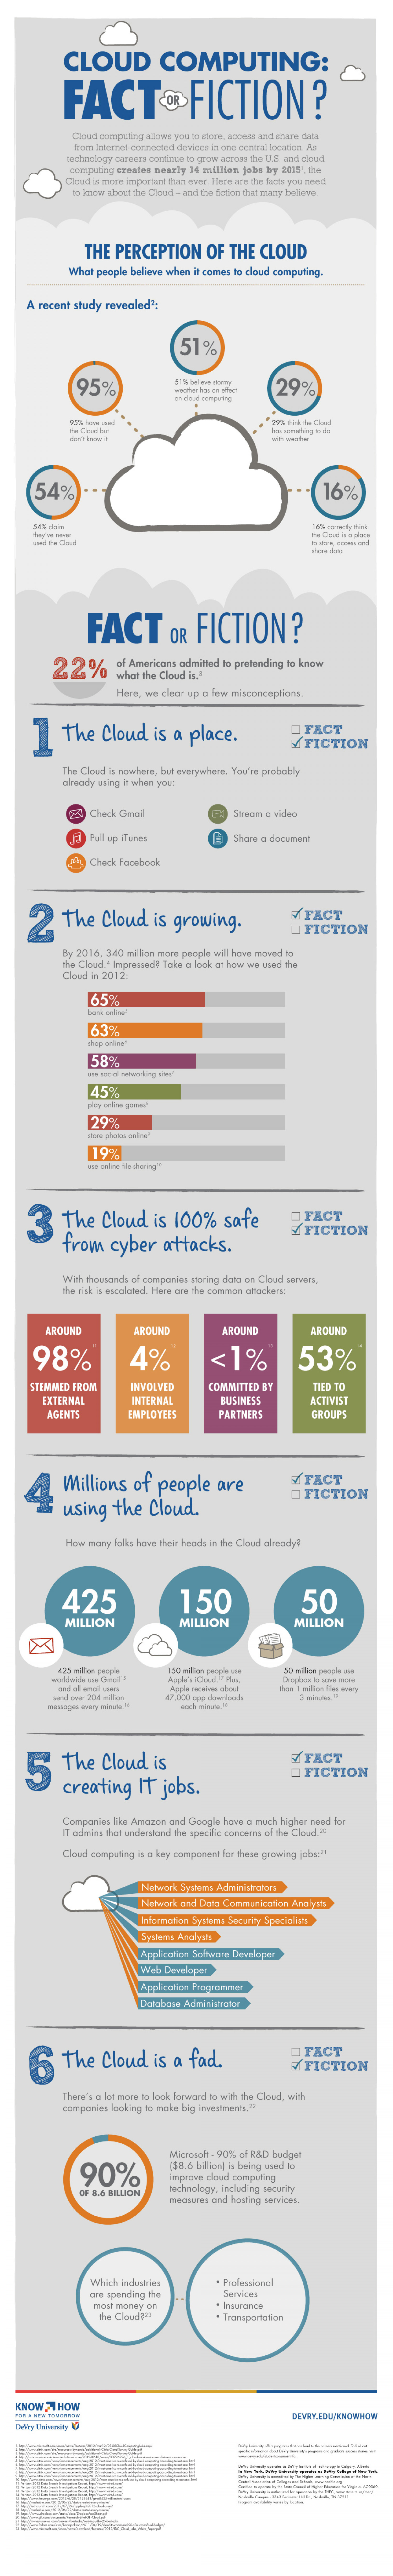 Cloud Computing - Fact or Fiction Infographic